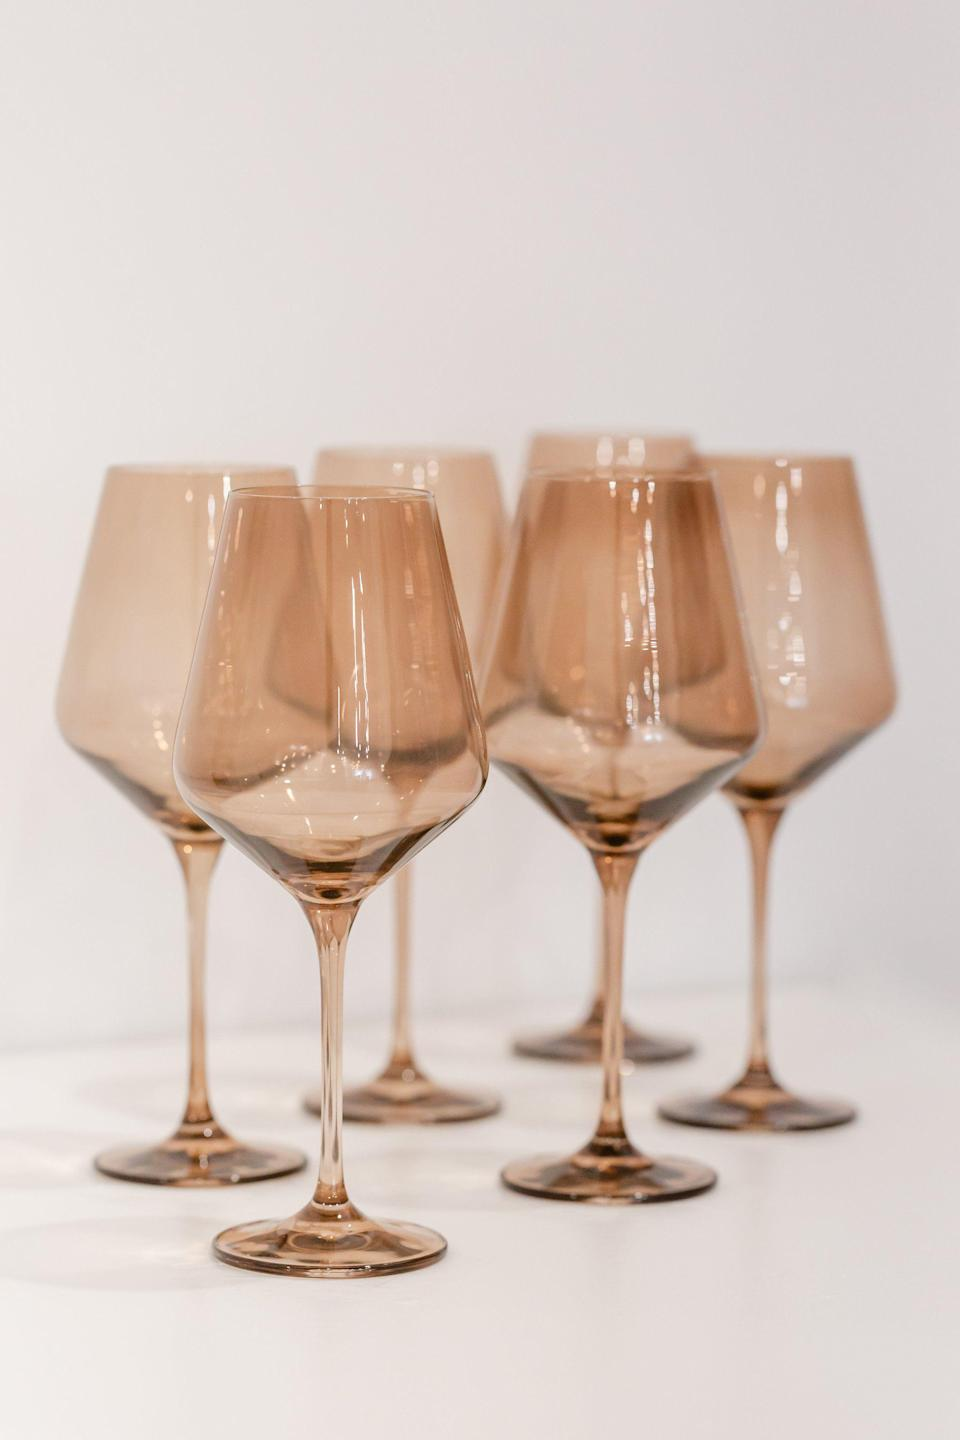 """<p><strong>Estelle Colored Glass</strong></p><p>estellecoloredglass.com</p><p><strong>$175.00</strong></p><p><a href=""""https://www.estellecoloredglass.com/collections/glassware/products/estelle-colored-wine-stemware-smoke"""" rel=""""nofollow noopener"""" target=""""_blank"""" data-ylk=""""slk:Shop Now"""" class=""""link rapid-noclick-resp"""">Shop Now</a></p><p>Estelle's colored-glass stemware, available in a set of six, is a great gift for the friend who loves to host. </p>"""